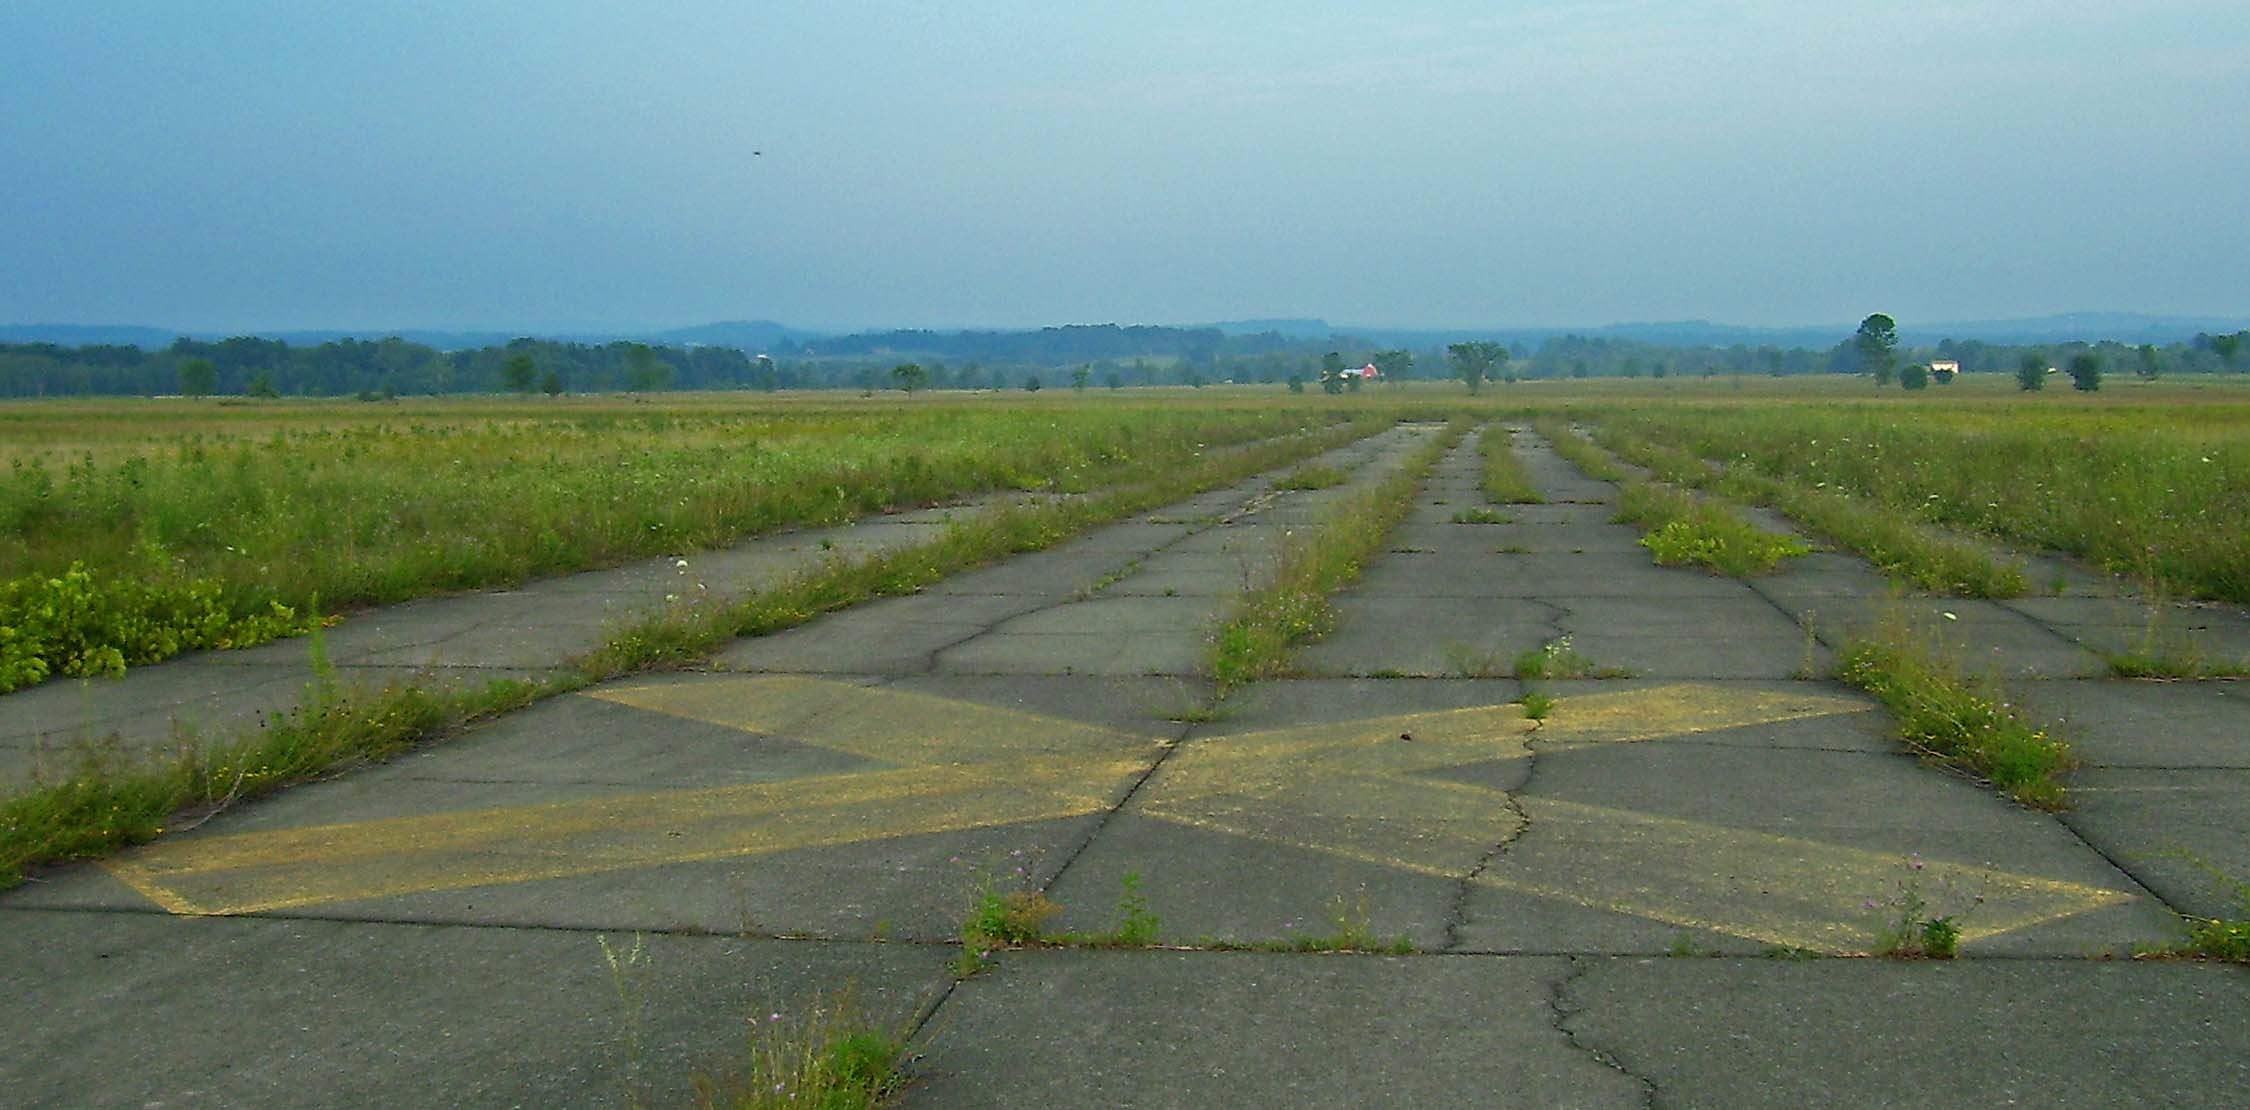 Shawangunk Grasslands NWR runways 2